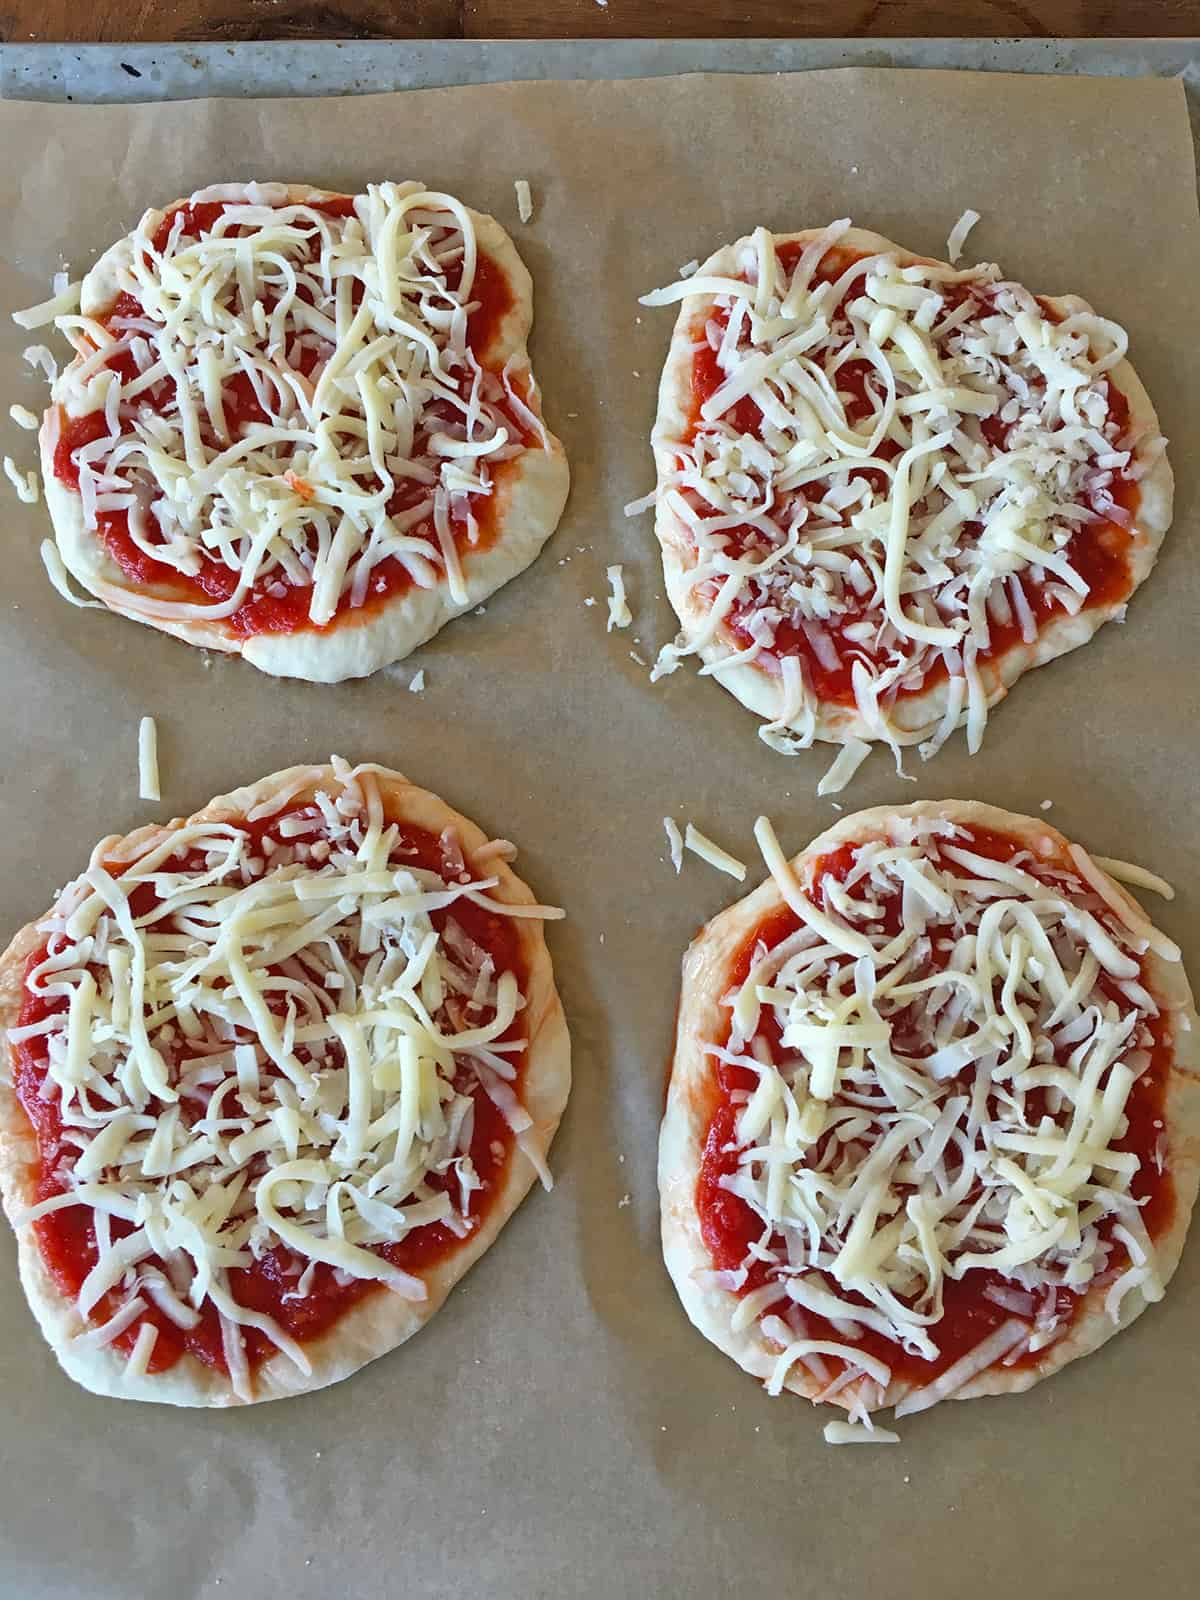 Four mini cheese pizzas assembled on a baking sheet lined with parchment paper